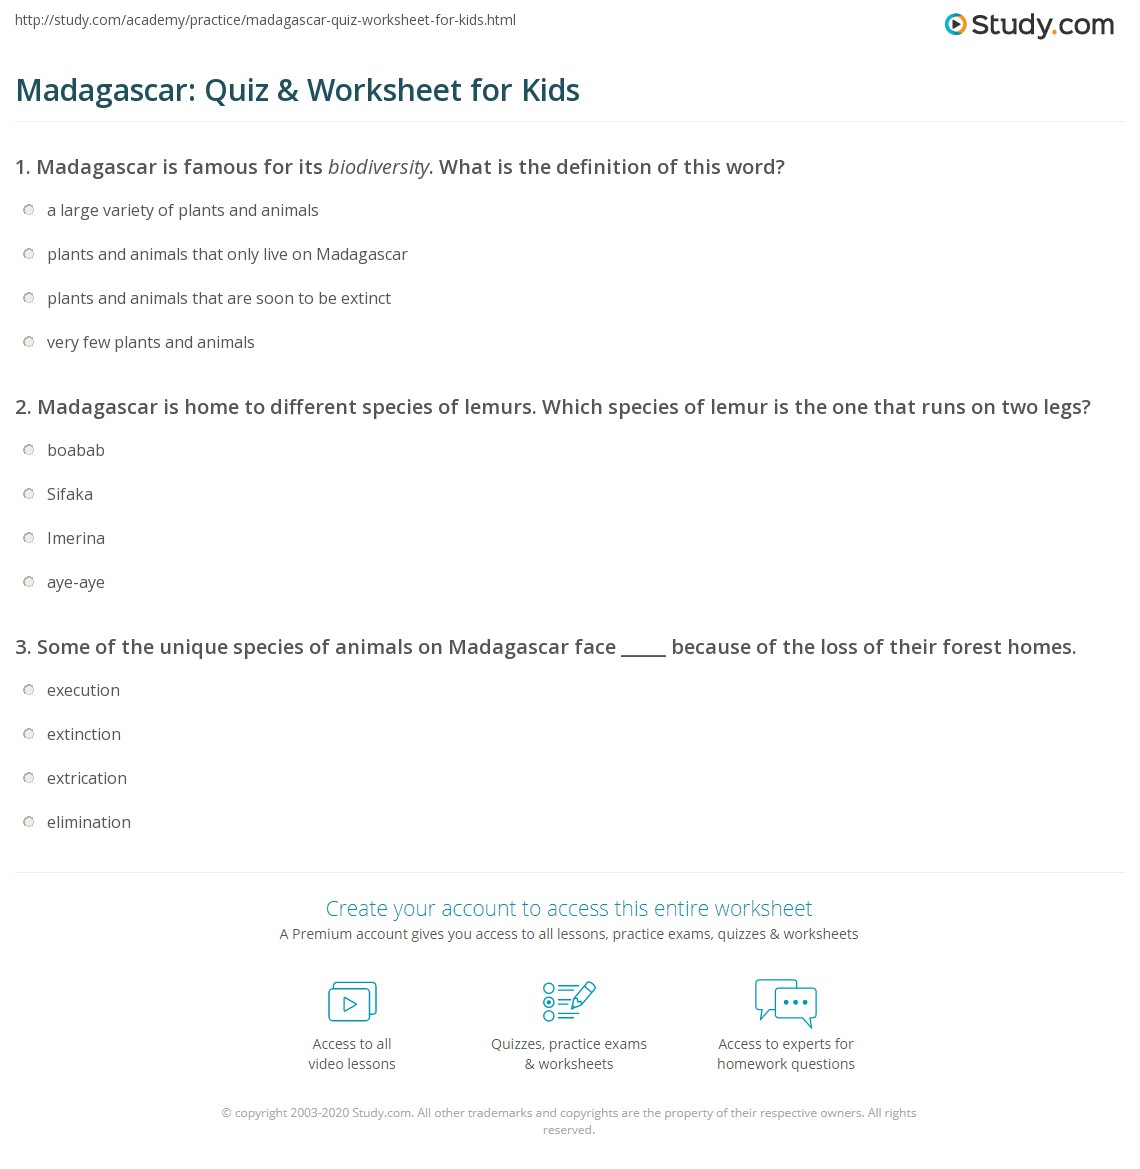 Biodiversity Worksheet For Kids biodiversity worksheets for kids – Bill Nye Biodiversity Worksheet